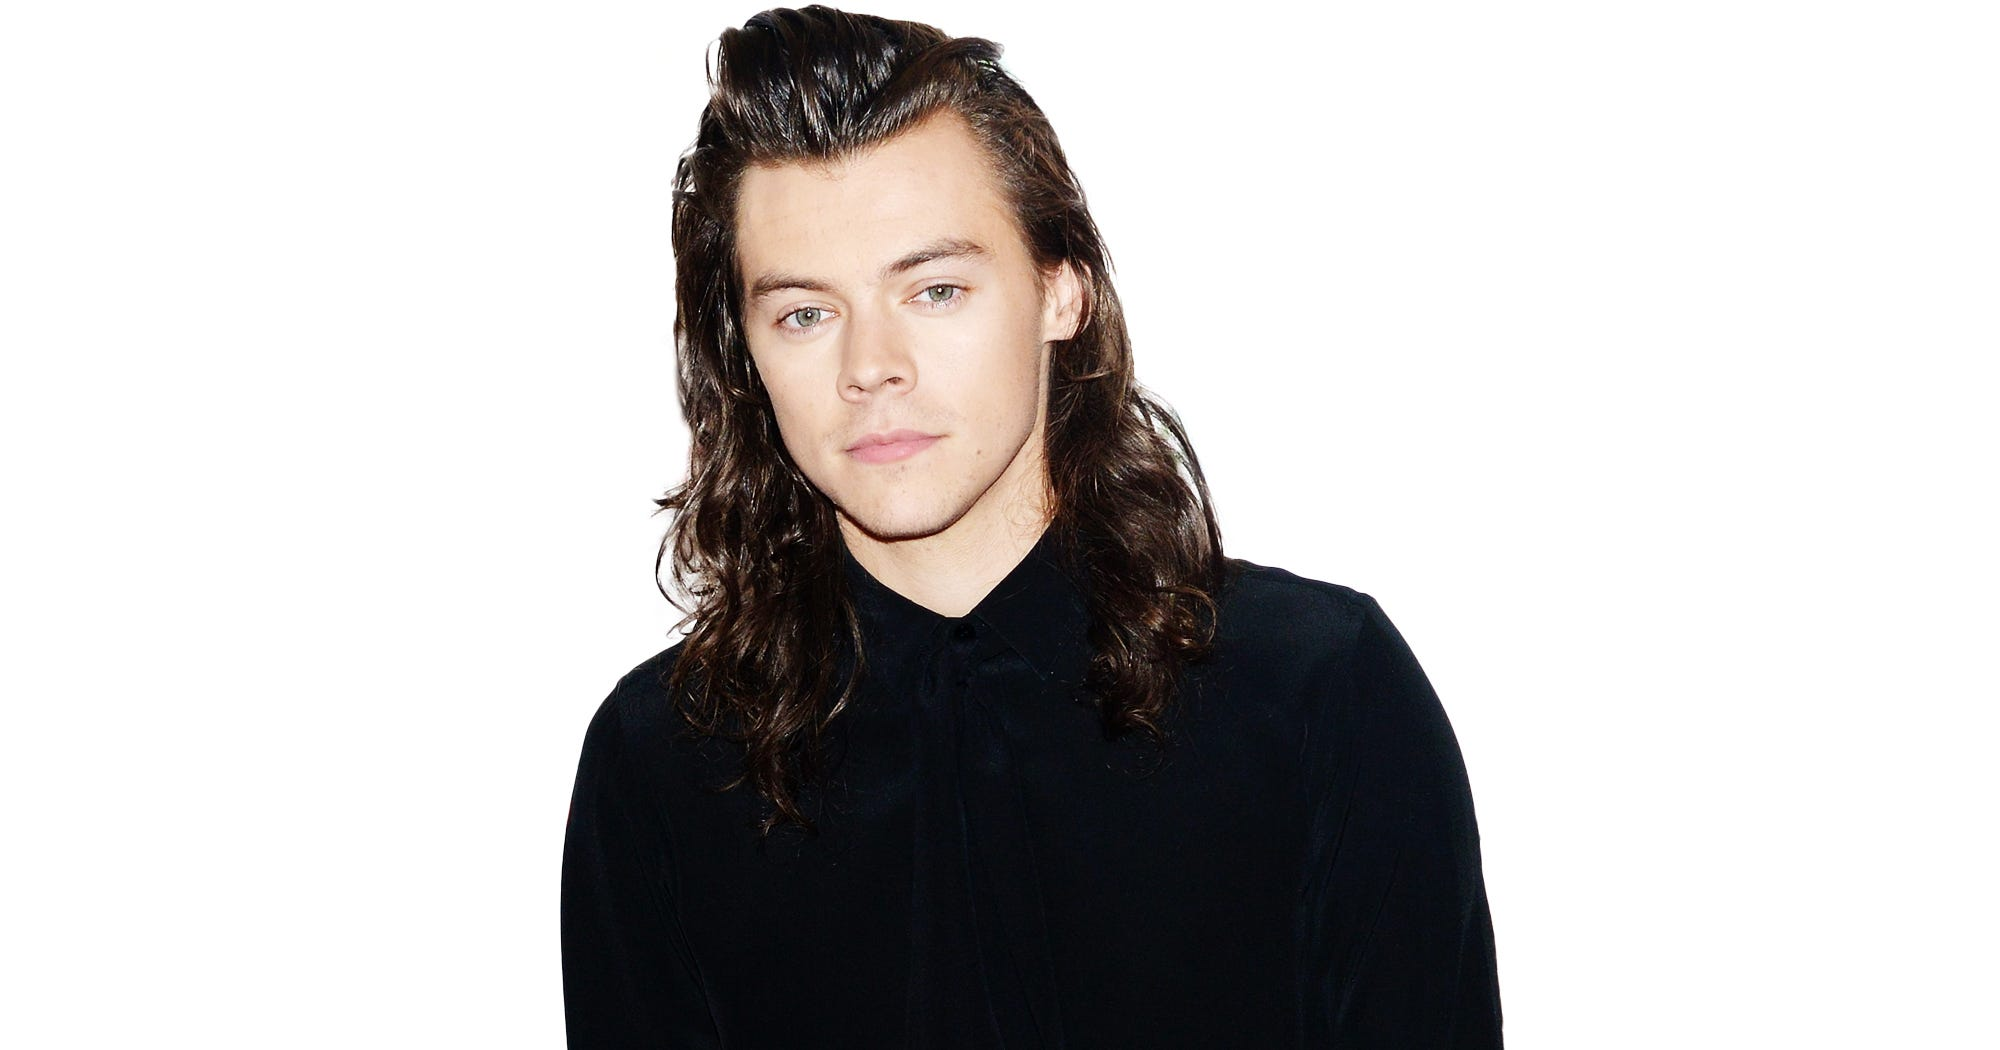 Harry Styles To Make His Film Debut Alongside Tom Hardy